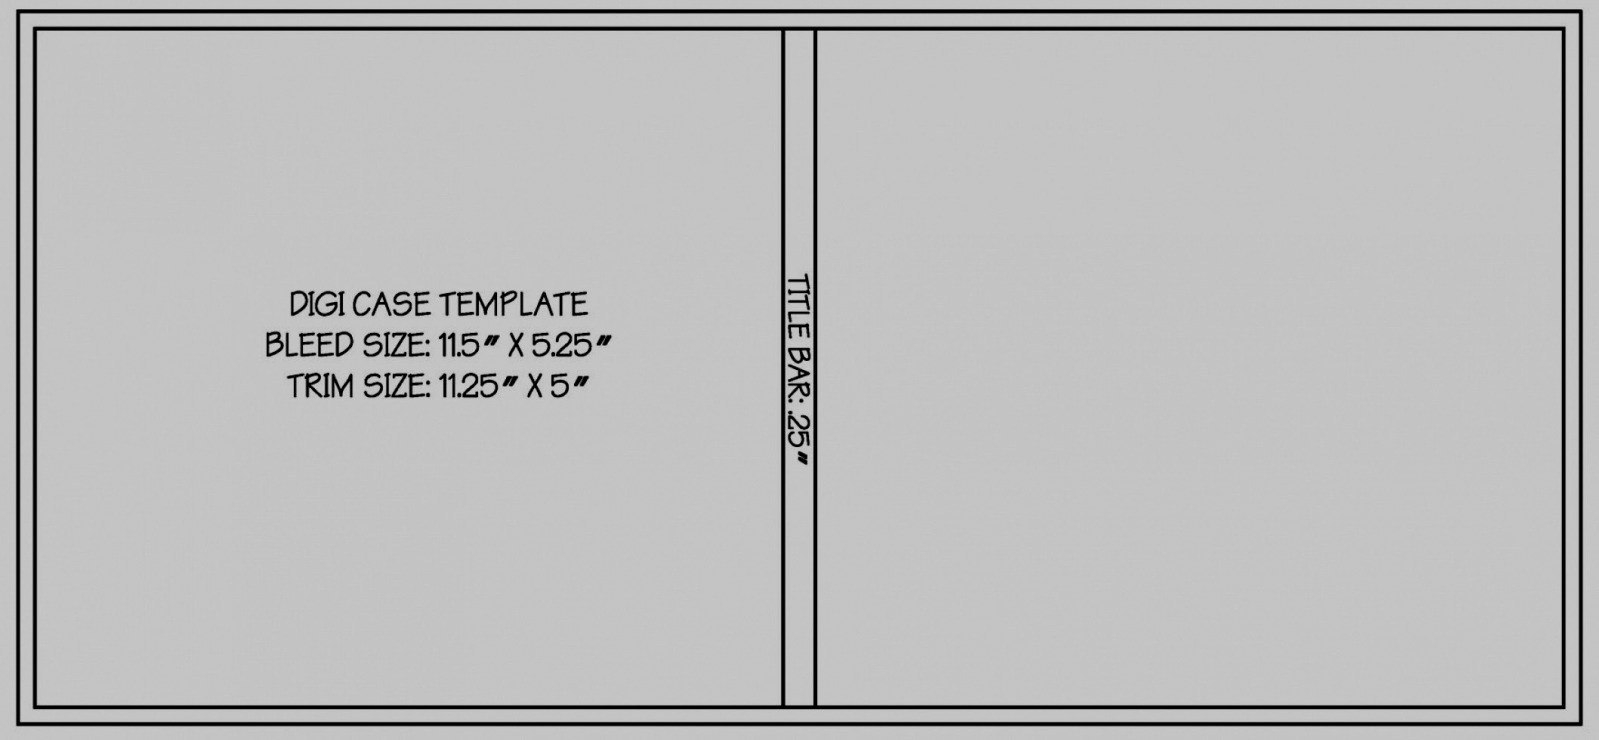 Template Ideas Blank Cover Word Cheque Download Free New Throughout Blank Cd Template Word